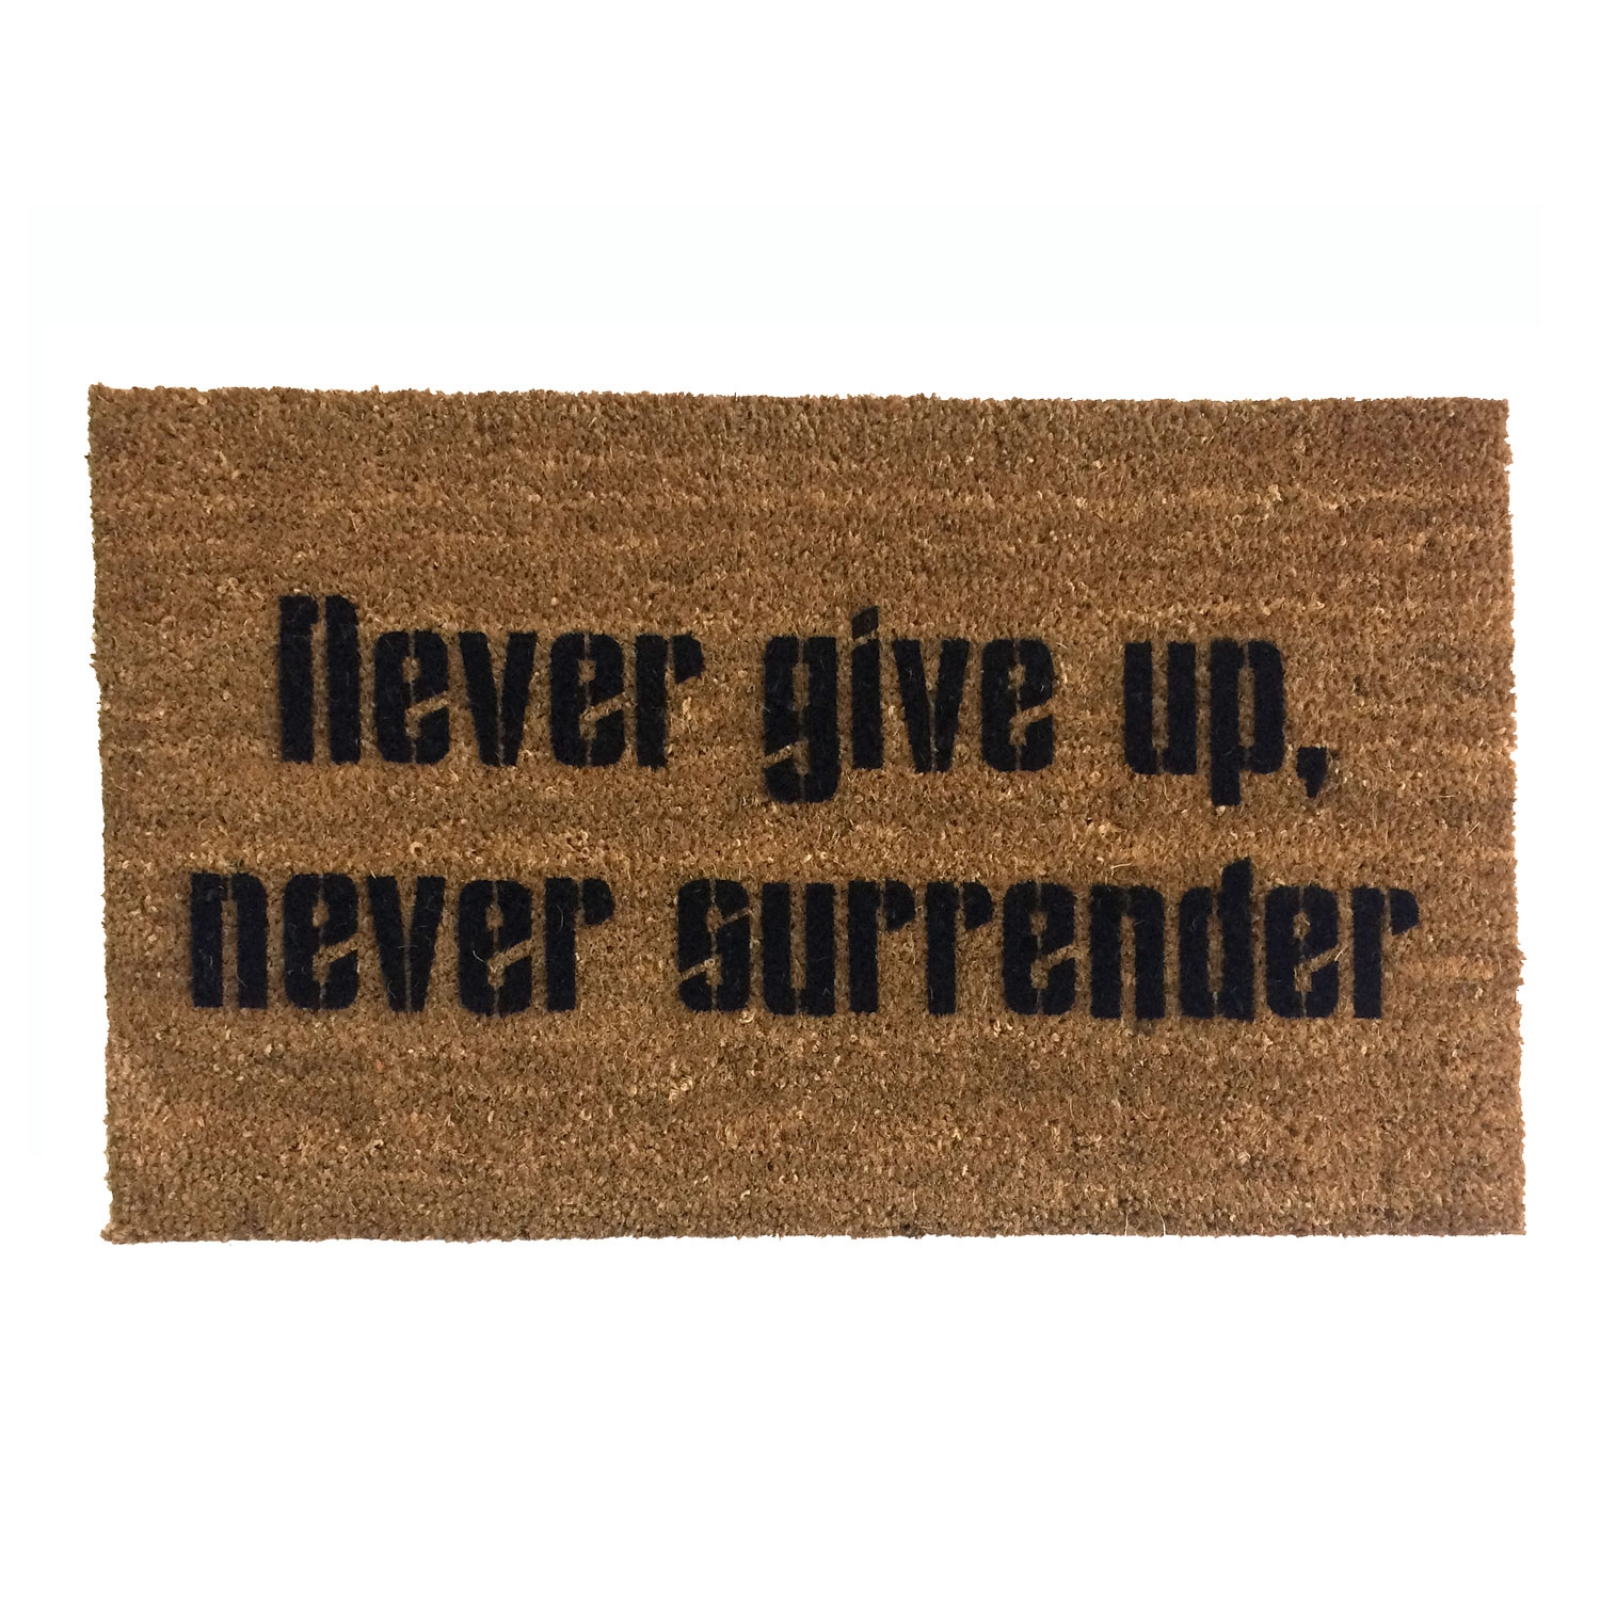 Never Give Up Never Surrender Galaxy Quest Welcome Doormat Novelty